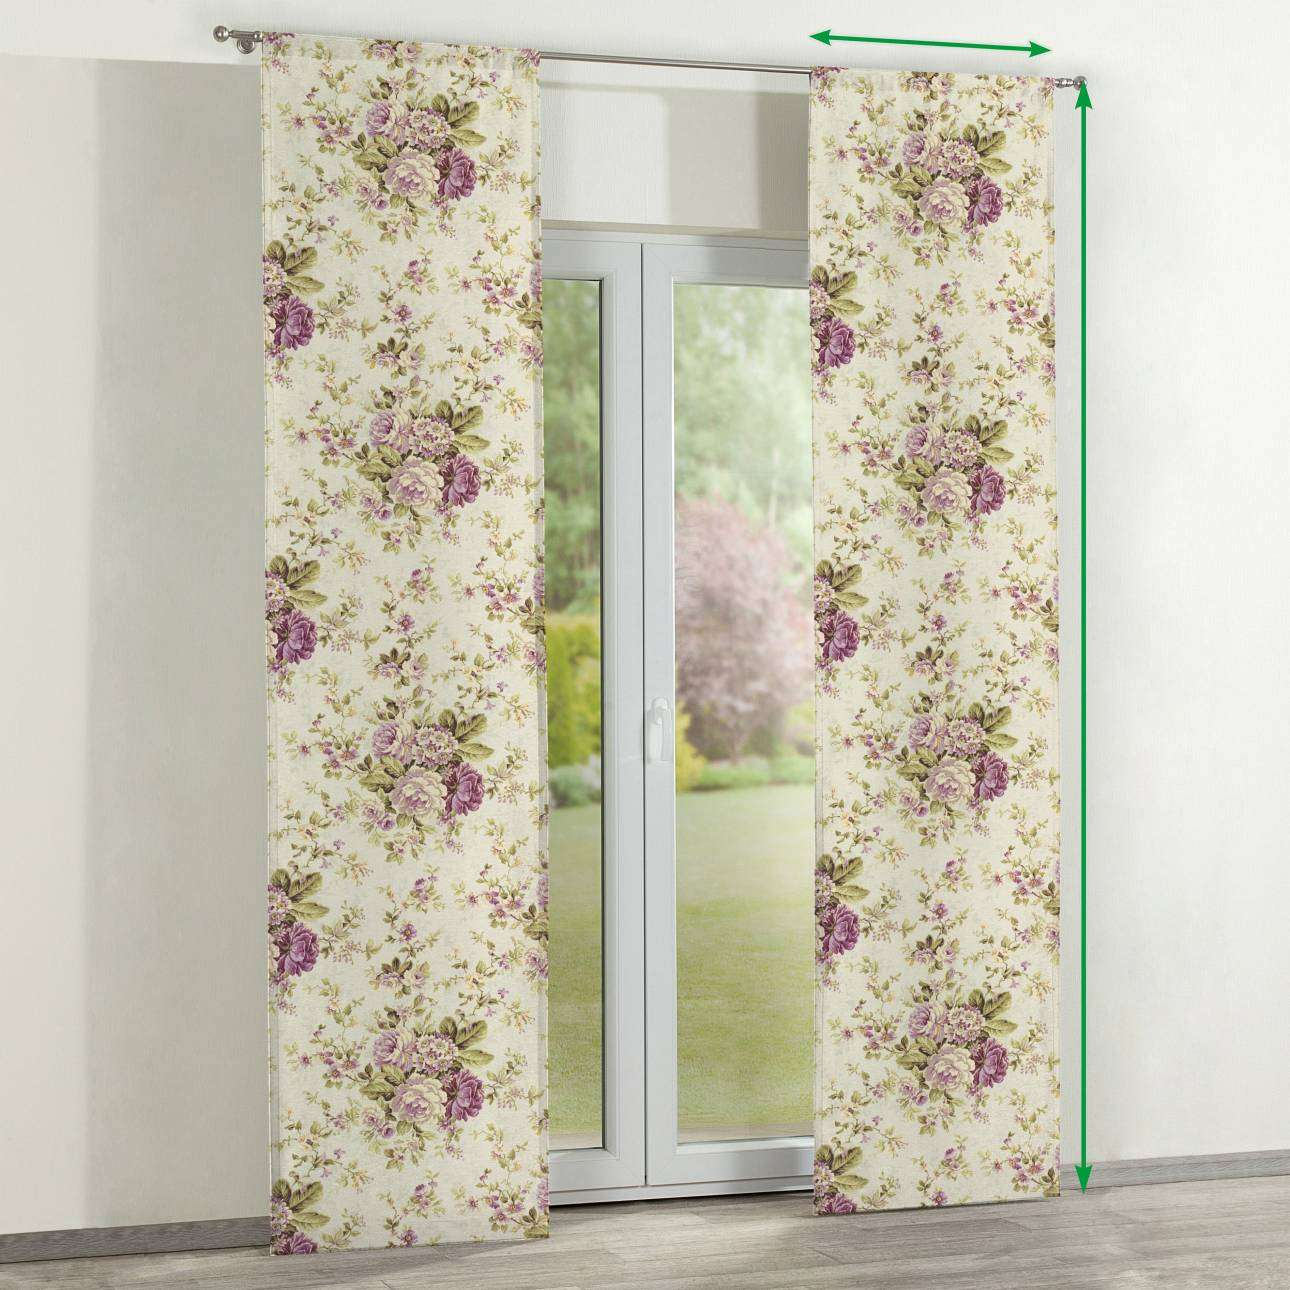 Slot panel curtains – Set of 2 in collection Londres, fabric: 122-08